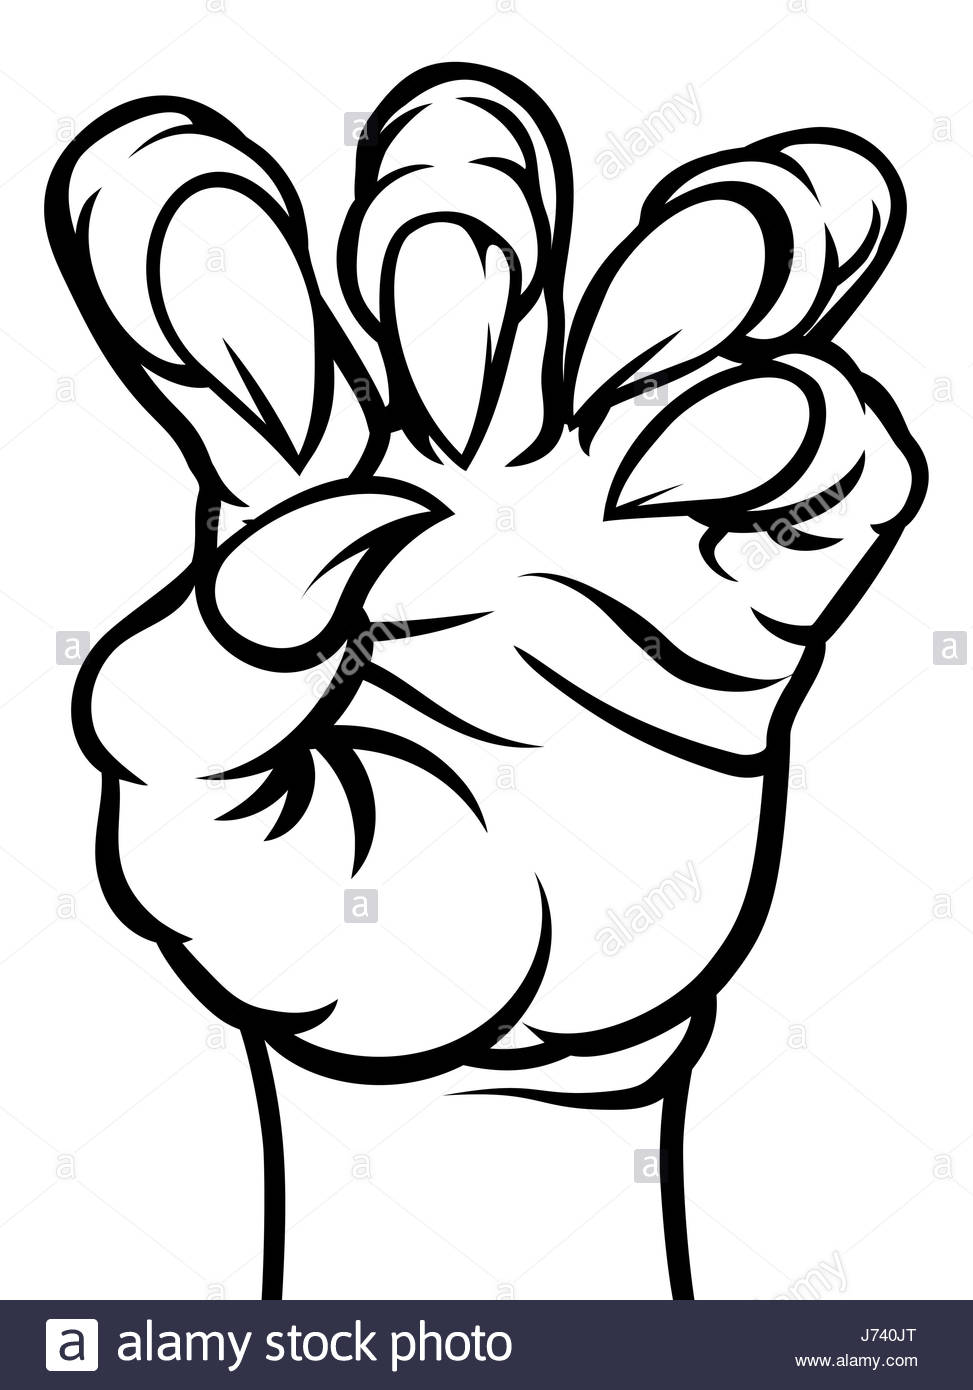 973x1390 A Scary Monster Talons Claw Hand In Black And White Stock Photo